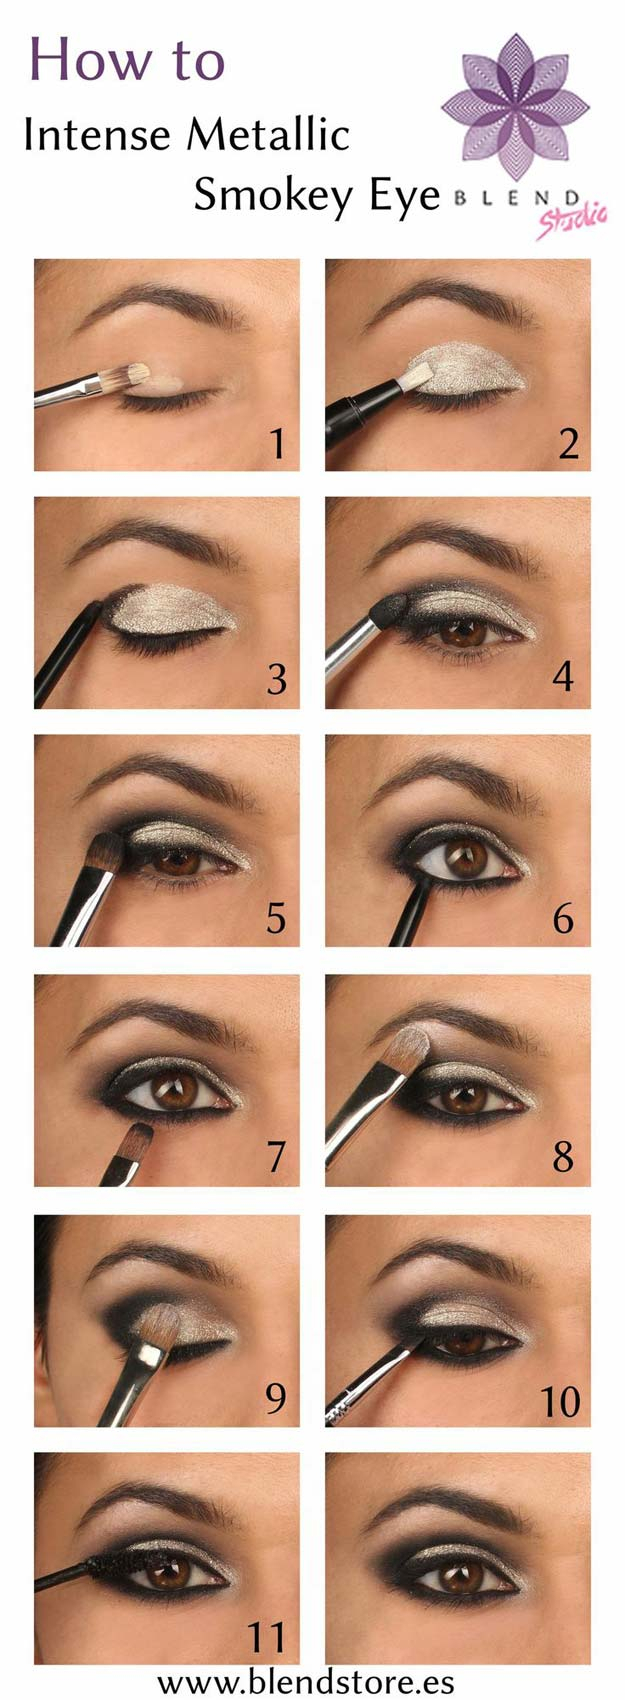 10 Lovable Prom Makeup Ideas For Hazel Eyes 38 makeup ideas for prom the goddess